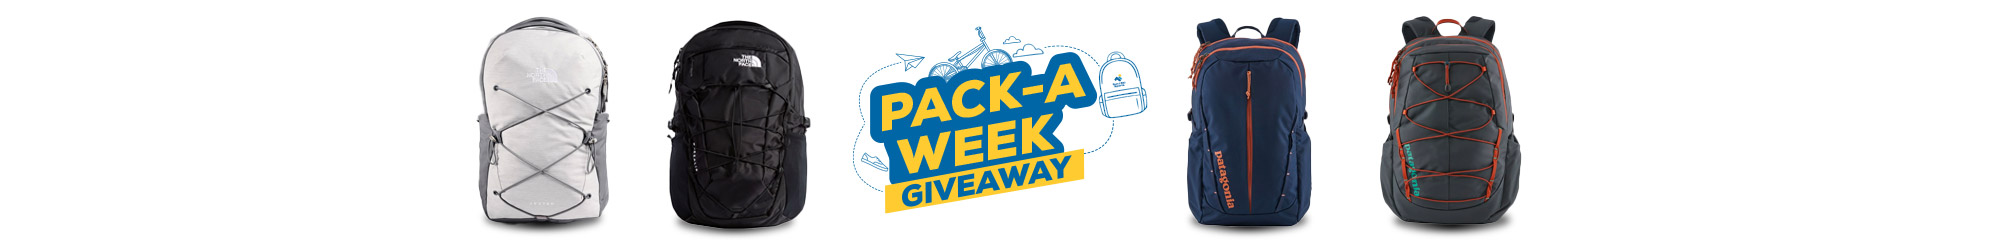 Pack-A-Week Giveaway. August 3rd - August 30th